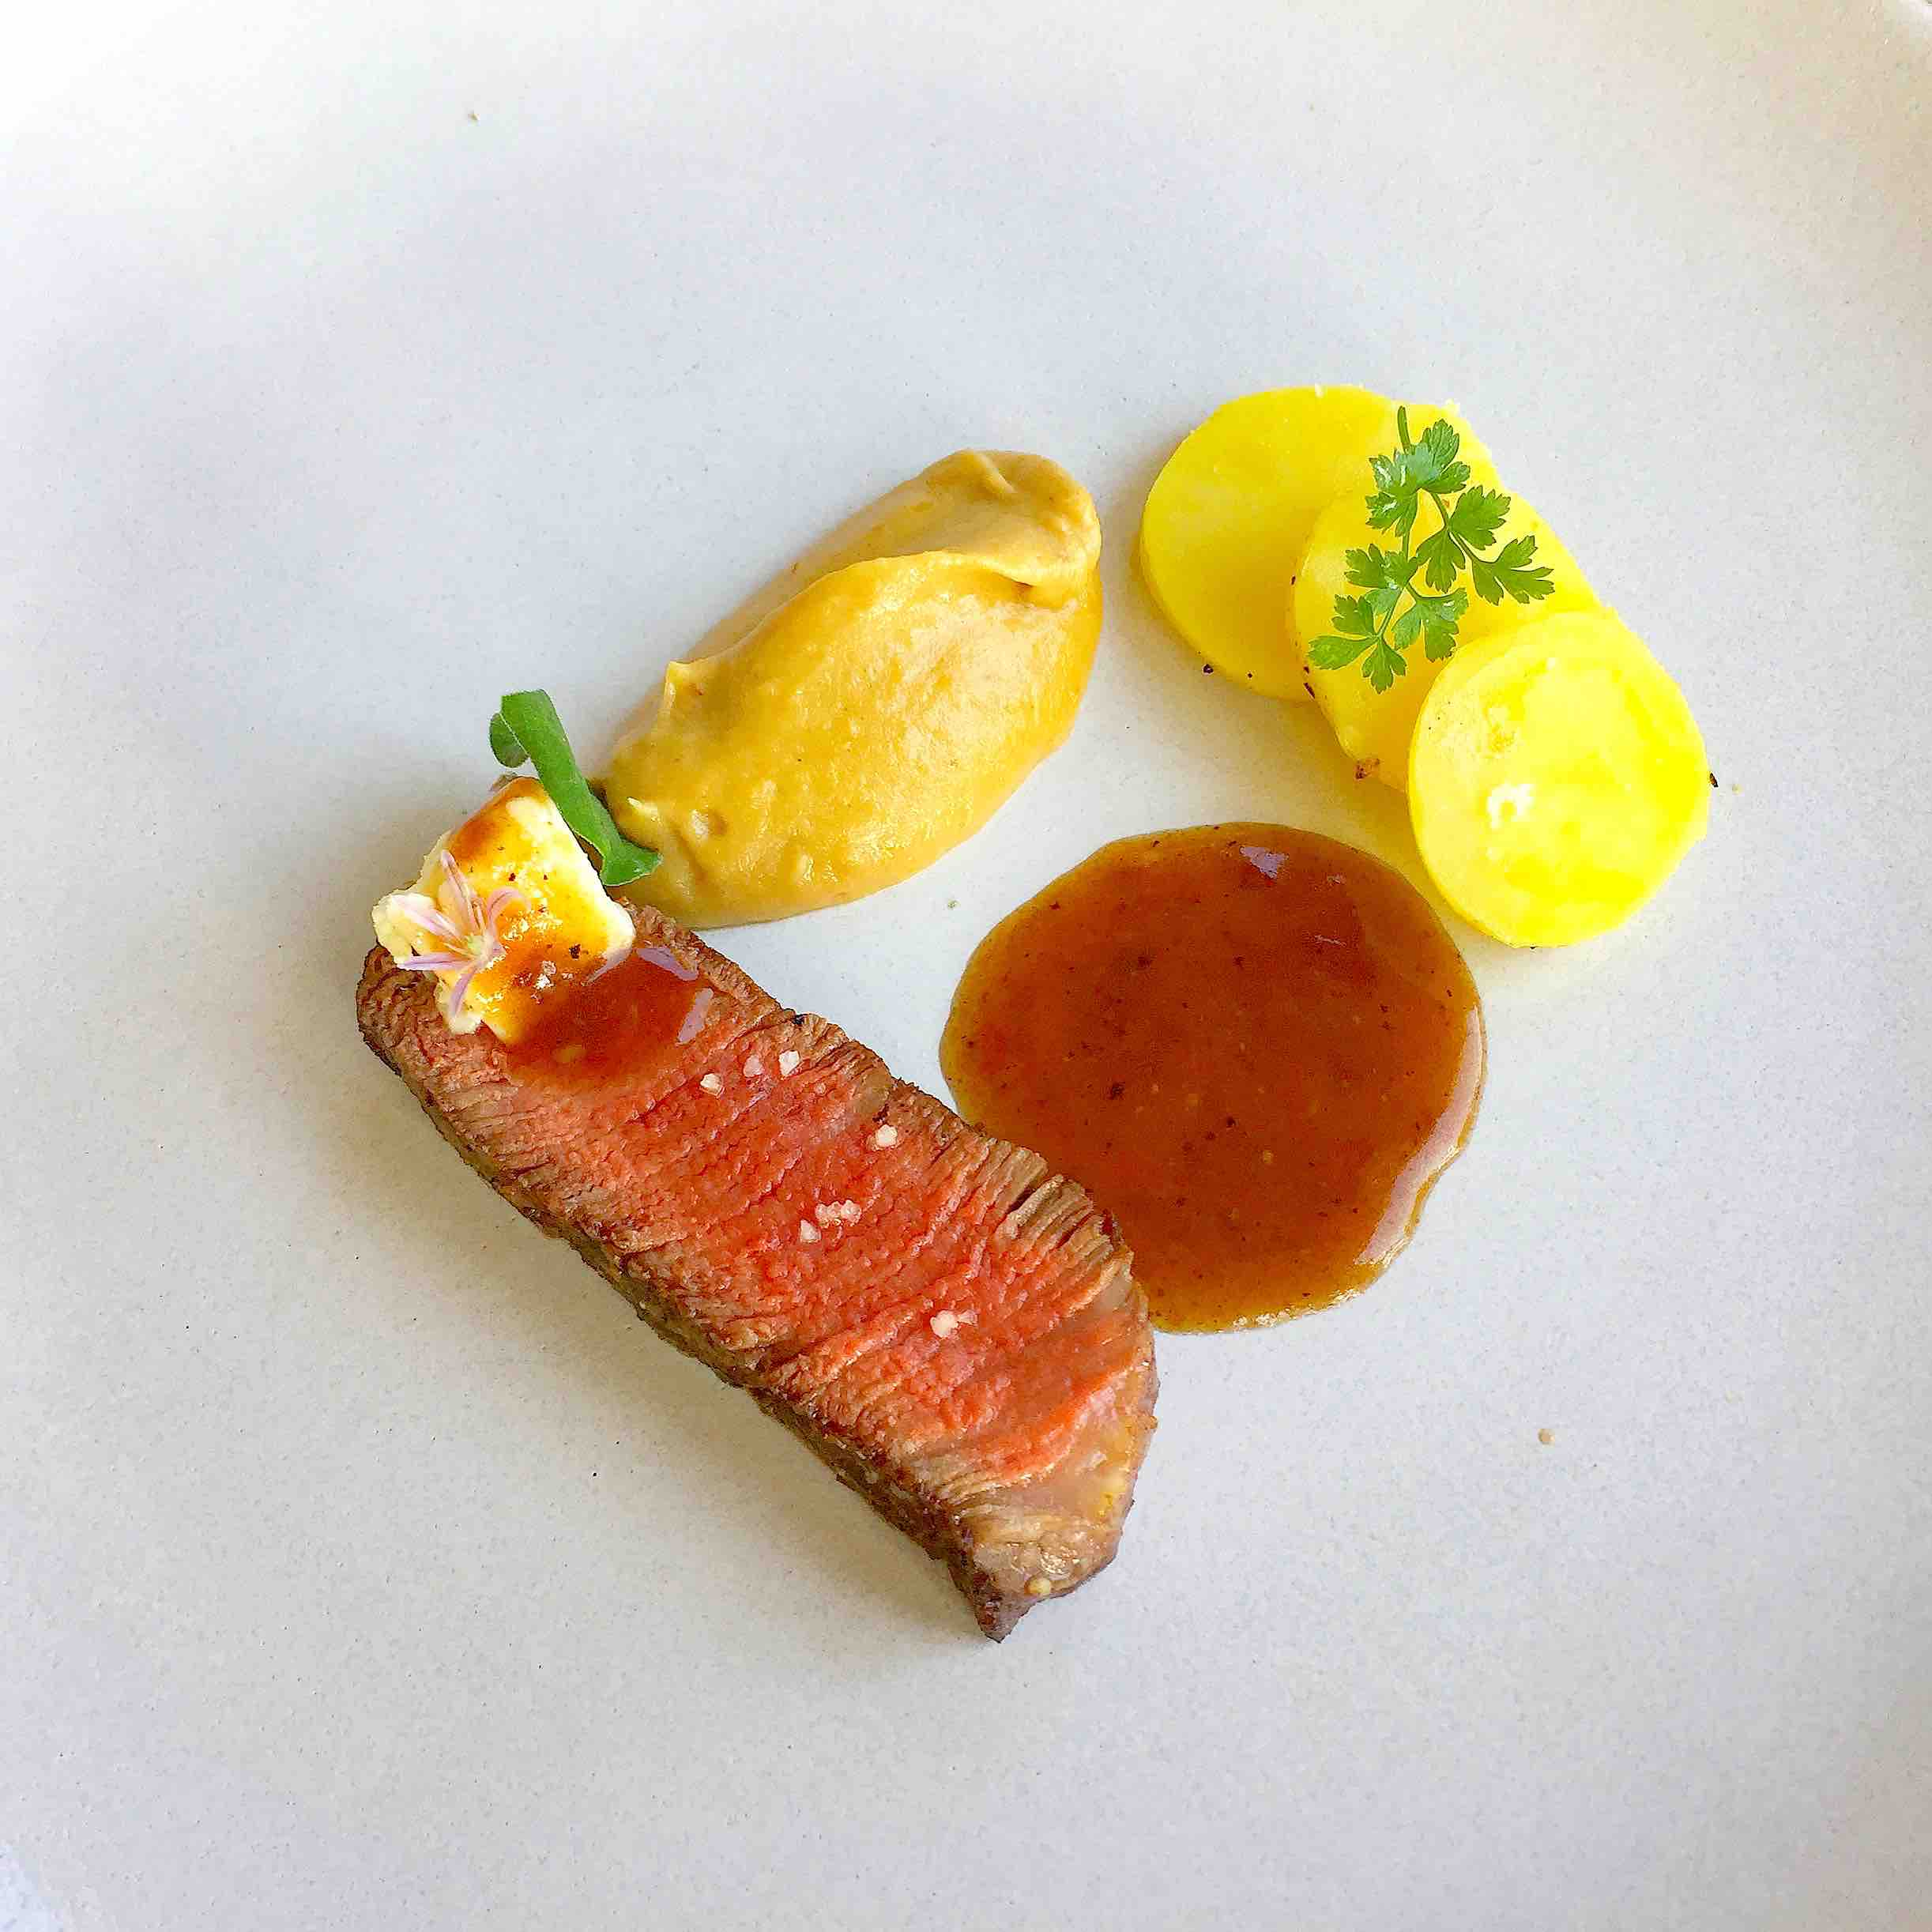 Beef fillet, Onion, and Potato